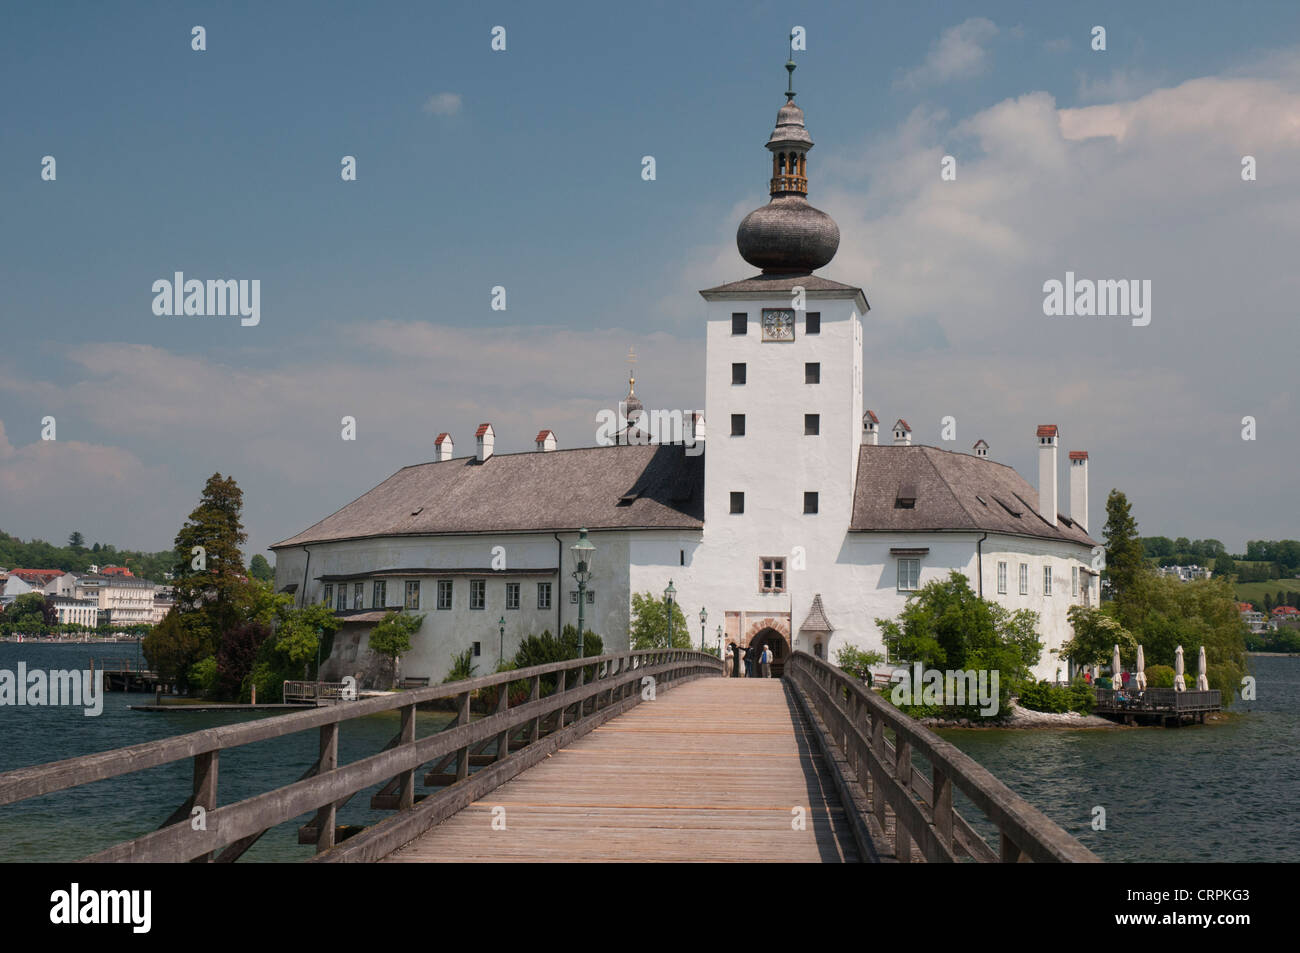 Schloss Ort, a castle set in the Traunsee (lake) at Gmünden in the Austrian Salzkammergut - Stock Image